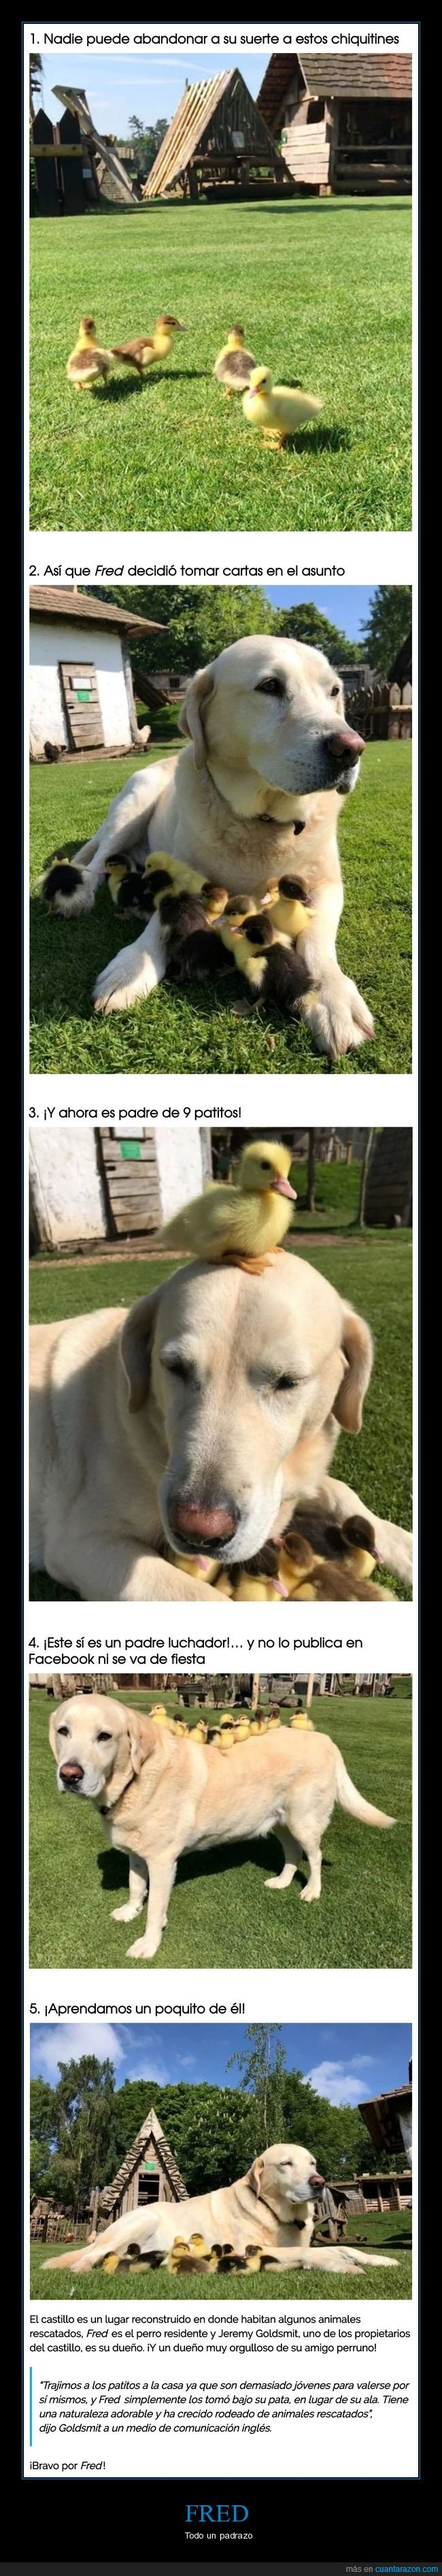 fred,padre,patos,perro